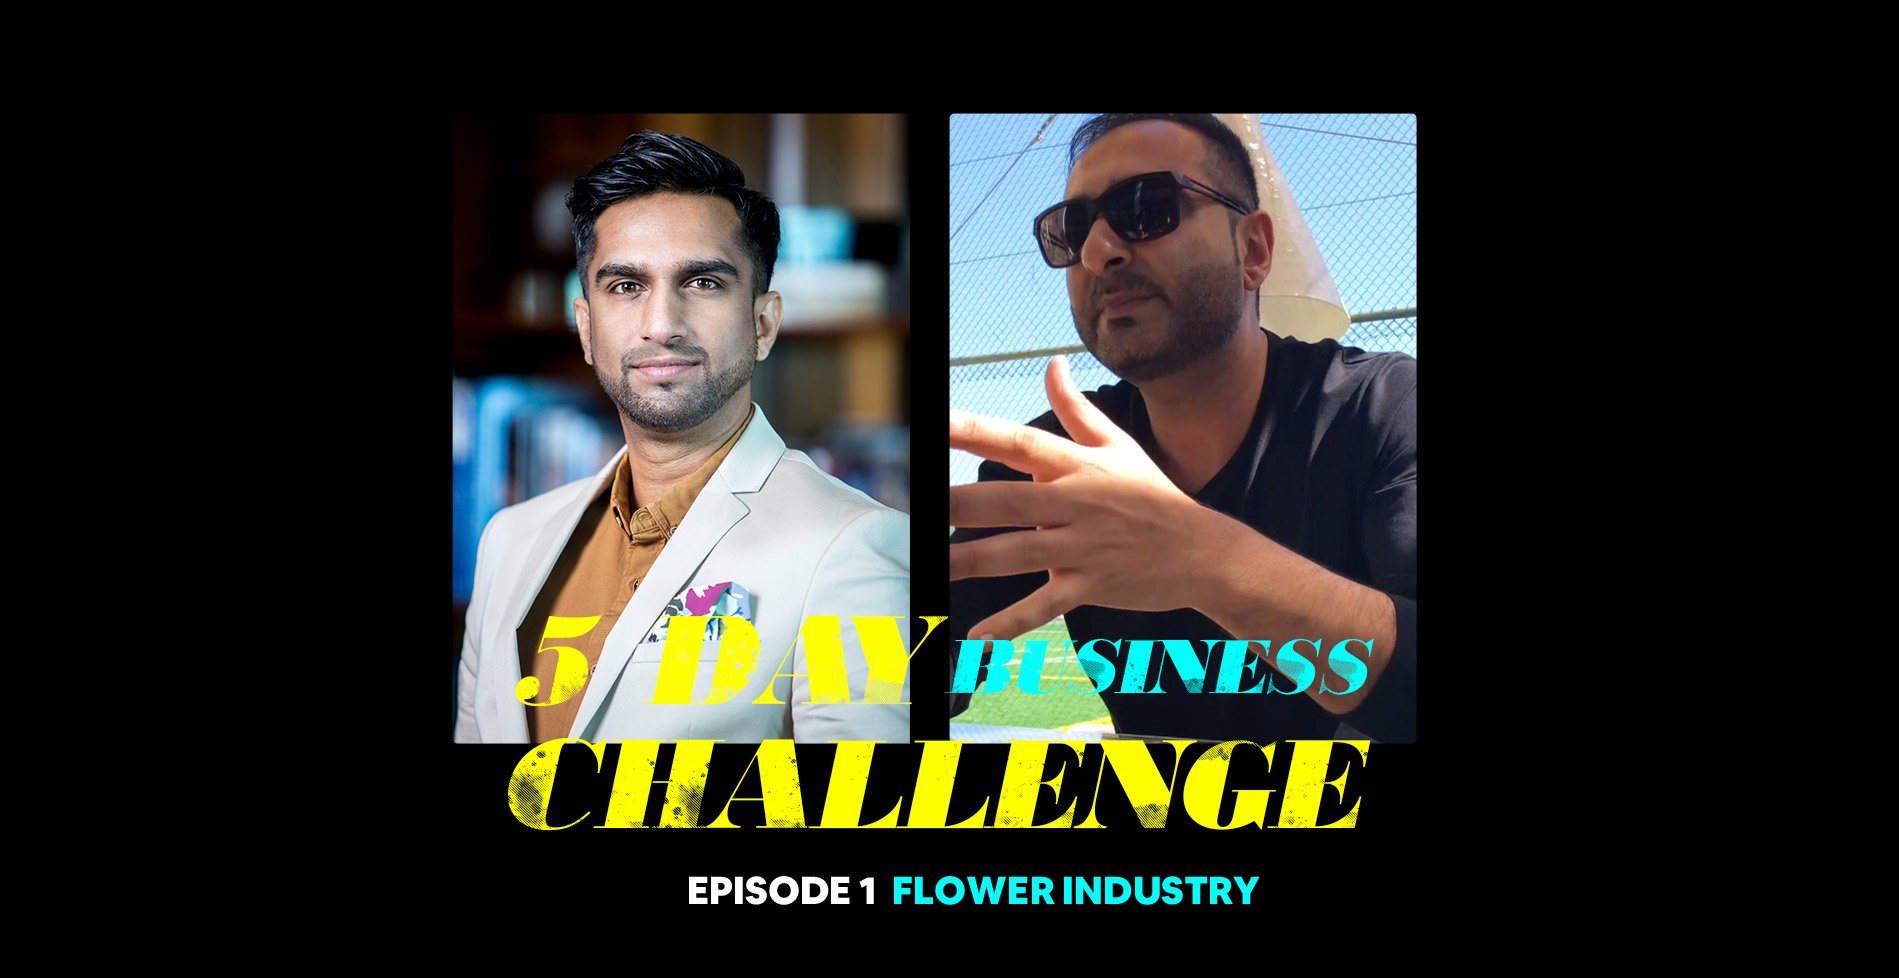 5 Day Business Challenge – Taking on the flower industry in Bahrain